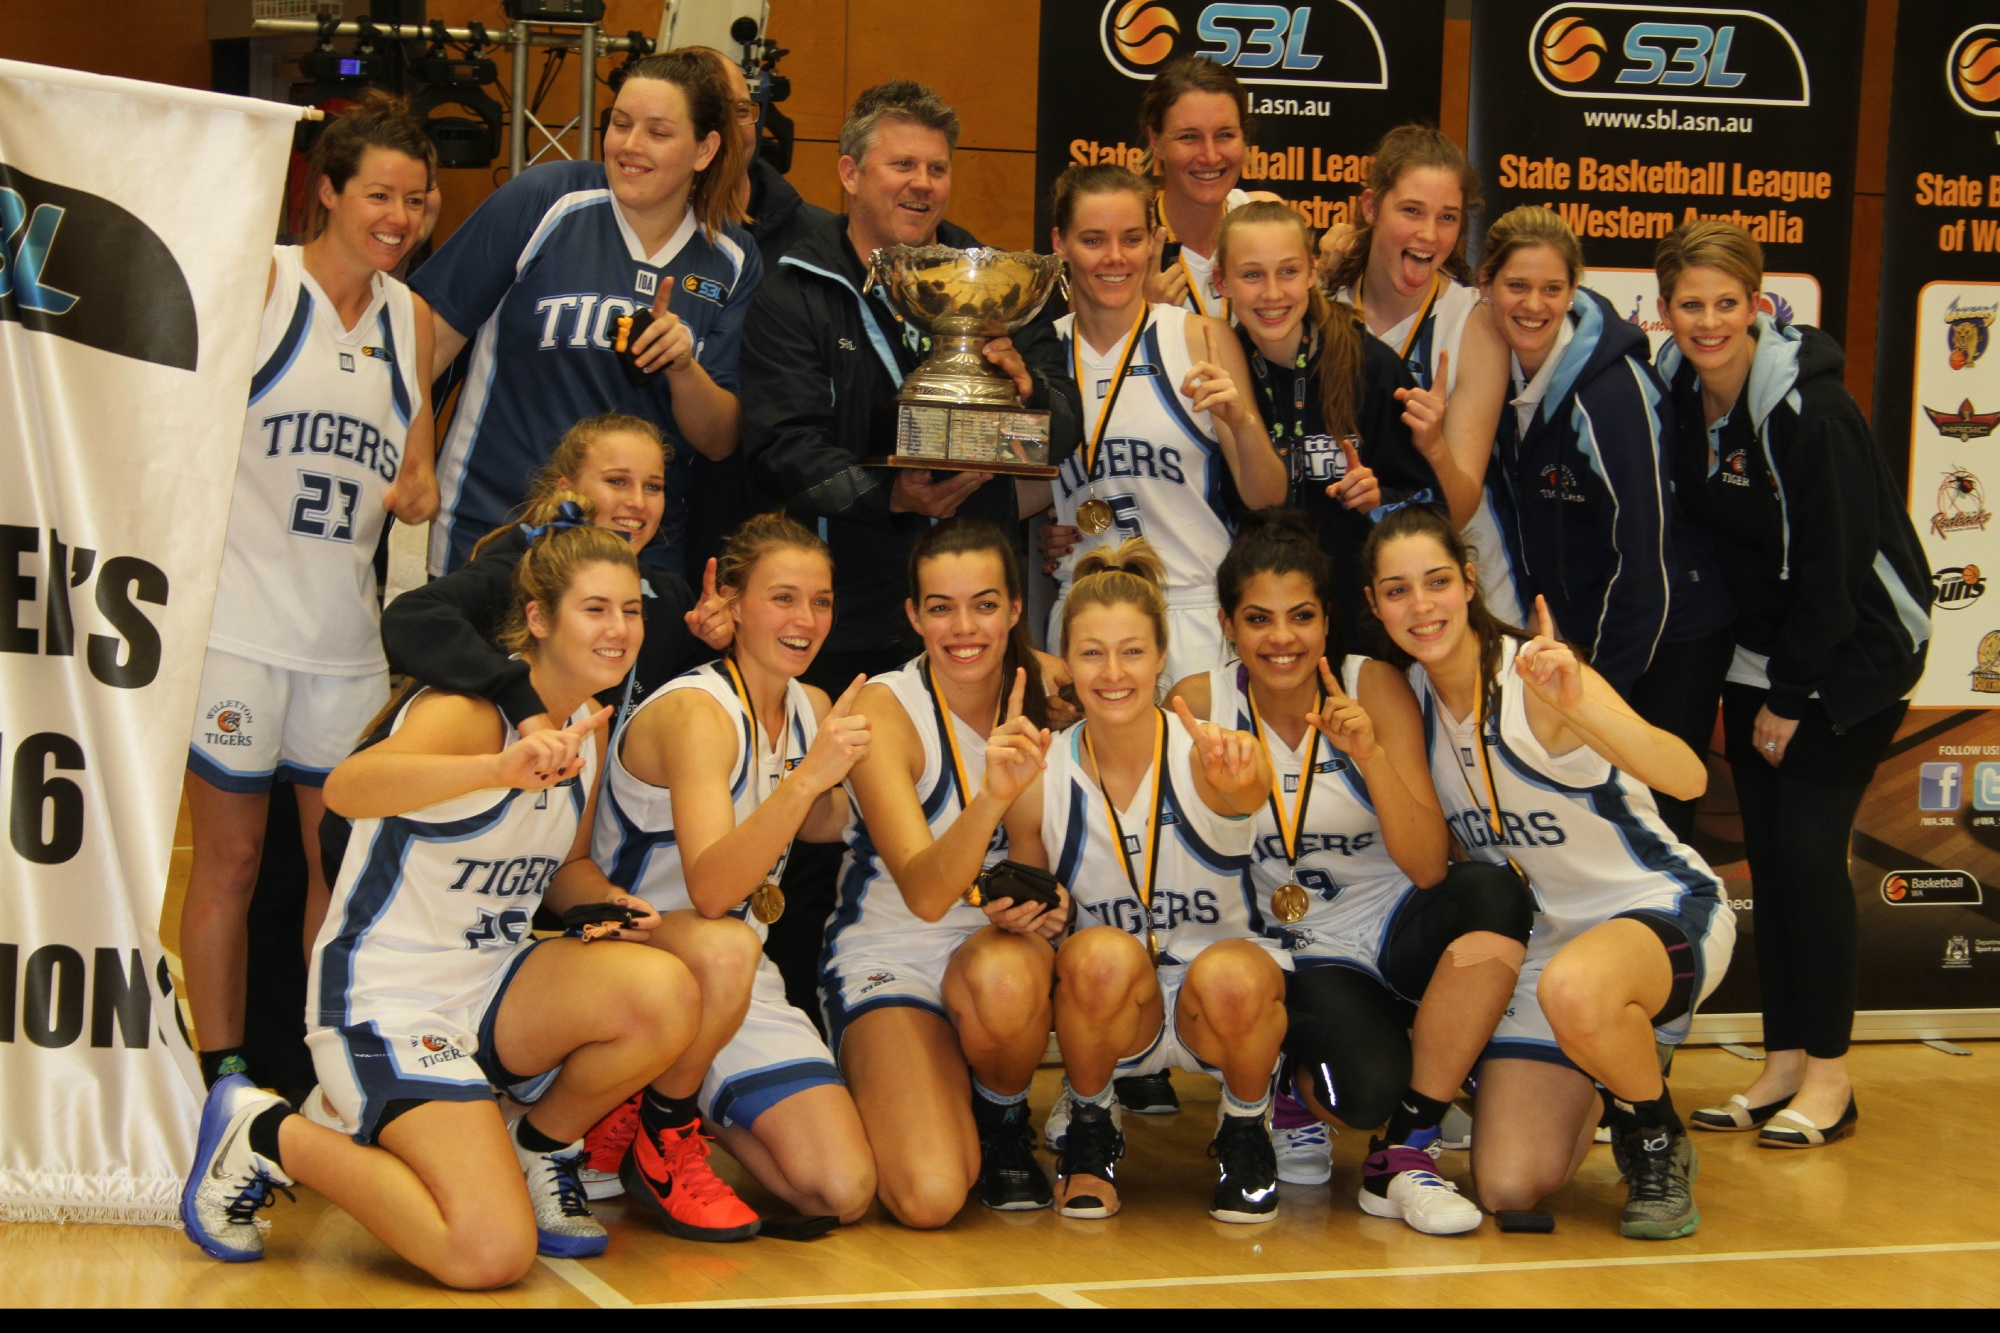 SBL: Tigers claim Women's championship in nail-biting win over Joondalup